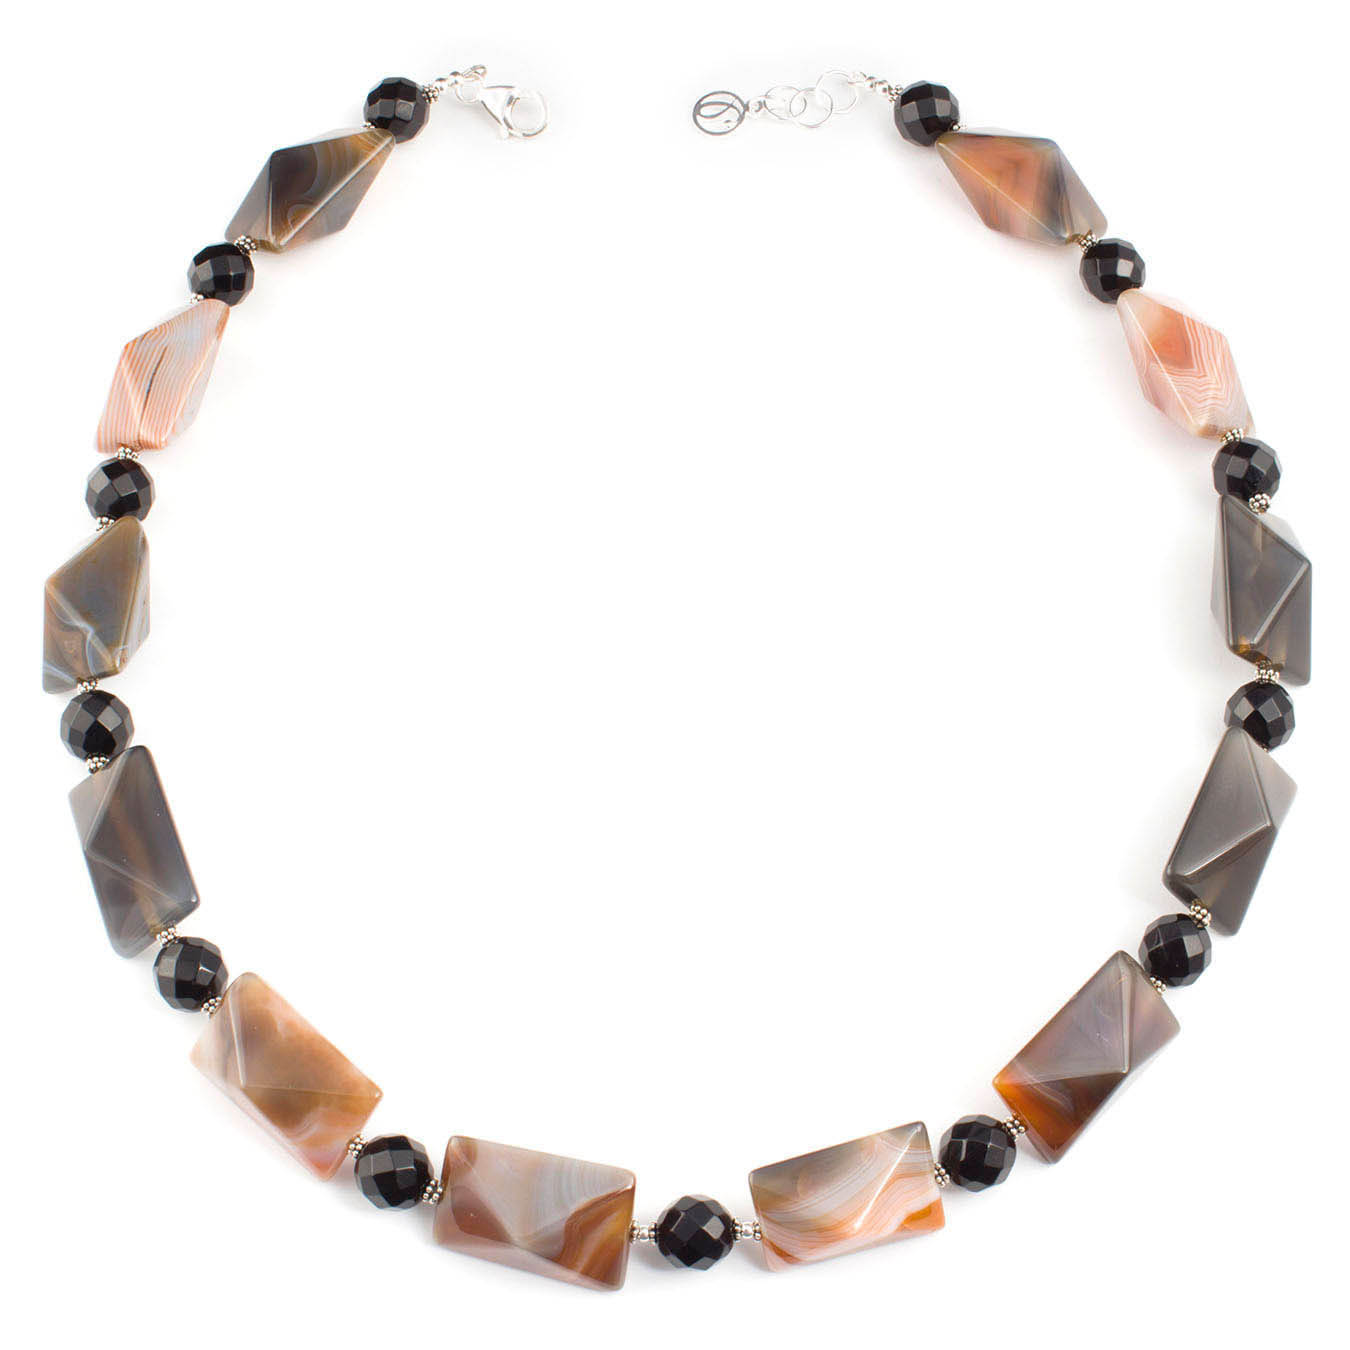 Bold Botswana and black agate handcrafted necklace with silver accents